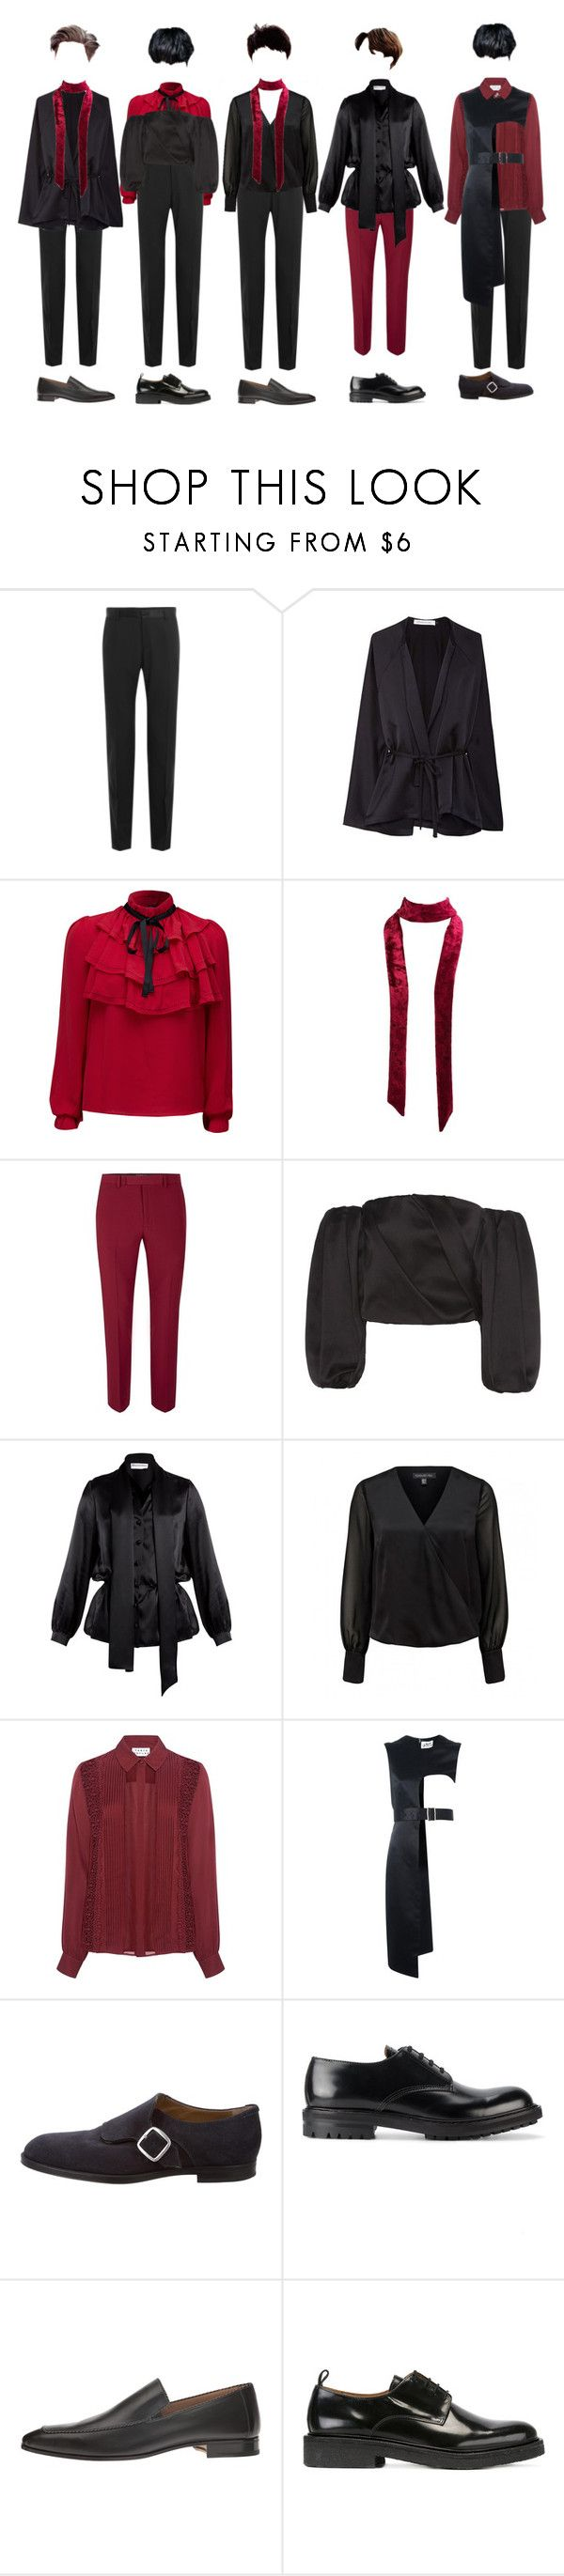 """""""C-R-1 _ WAS"""" by xxeucliffexx ❤ liked on Polyvore featuring Dolce&Gabbana, WithChic, Charlotte Russe, Topman, The Row, Balenciaga, Tanya Taylor, Noir Kei Ninomiya, Jimmy Choo and Alexander McQueen"""